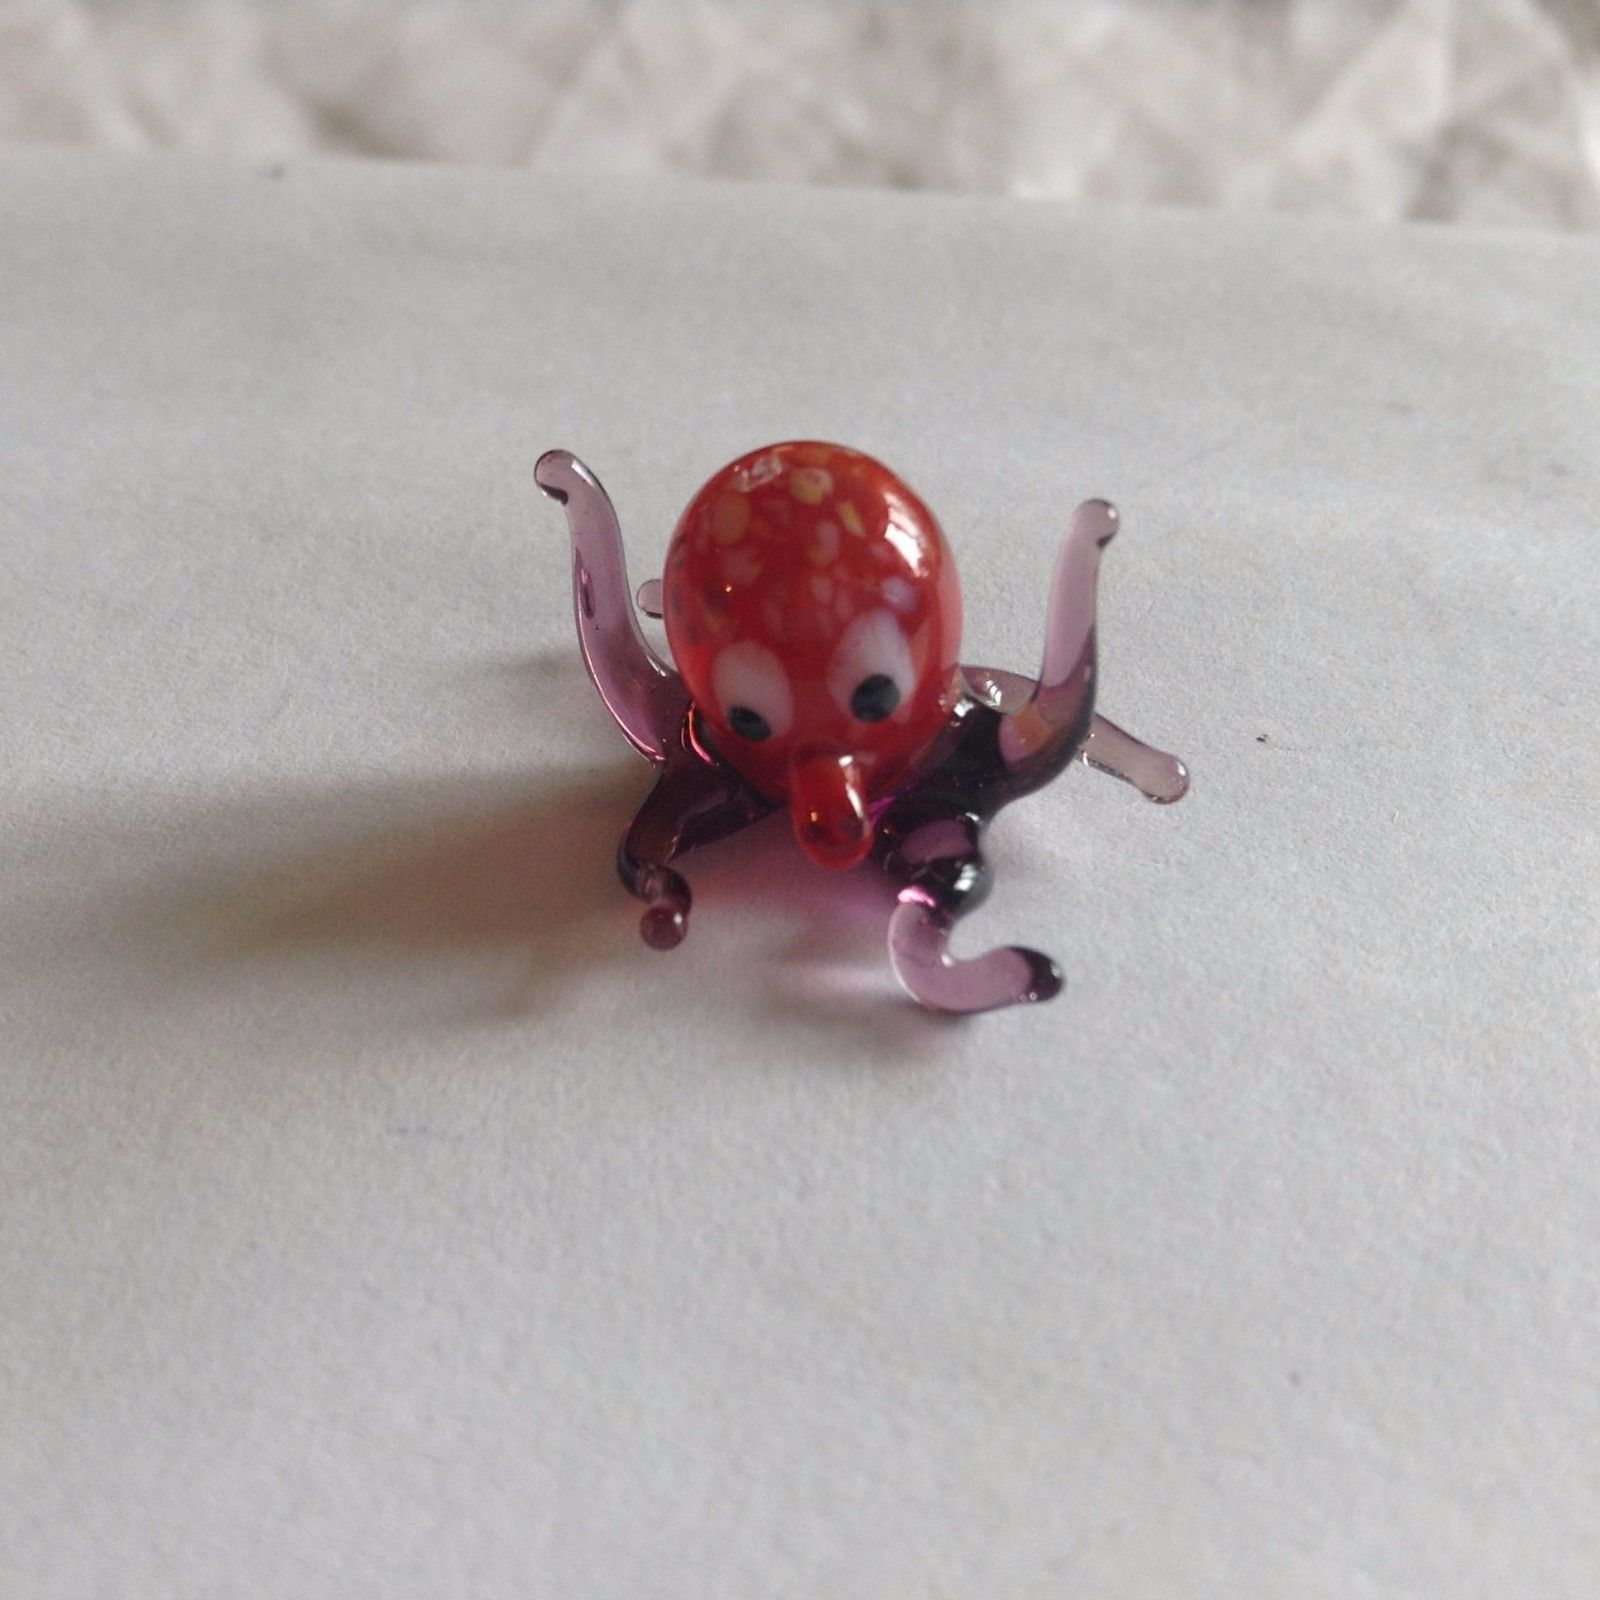 Miniature small hand blown glass purple and red octopus made USA NIB